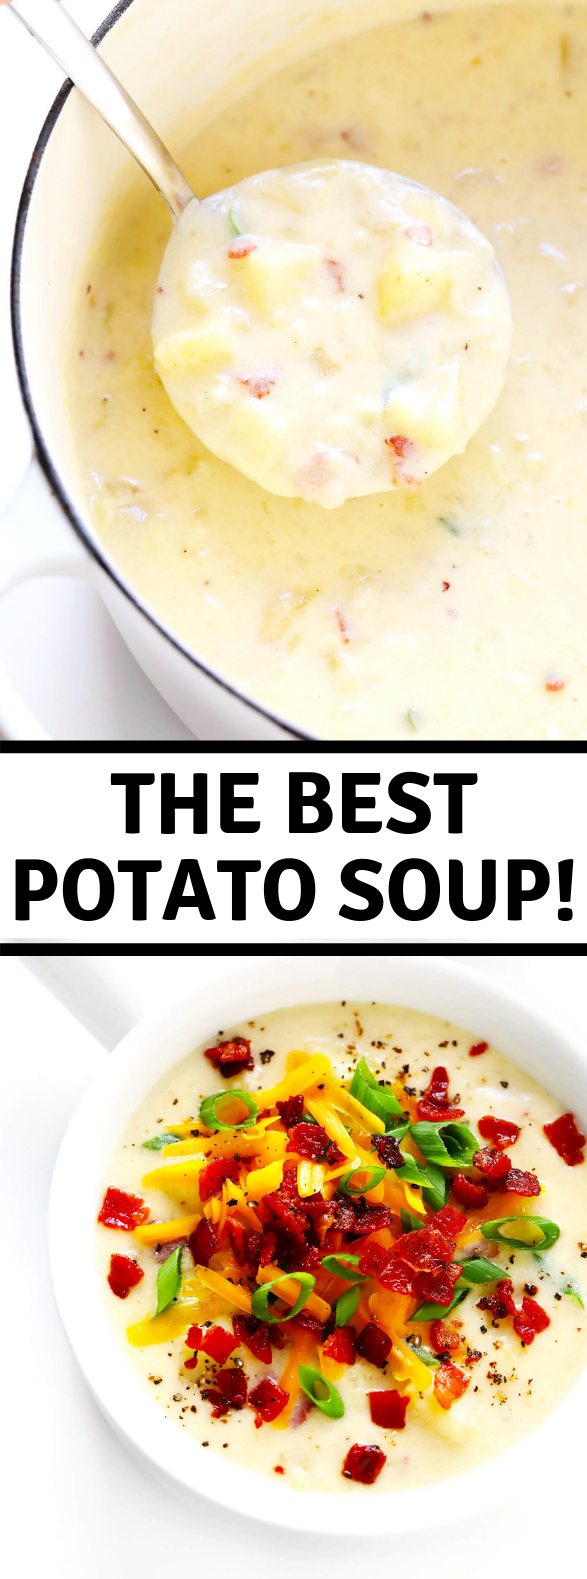 The BEST Potato Soup #deliciousfood #recipes